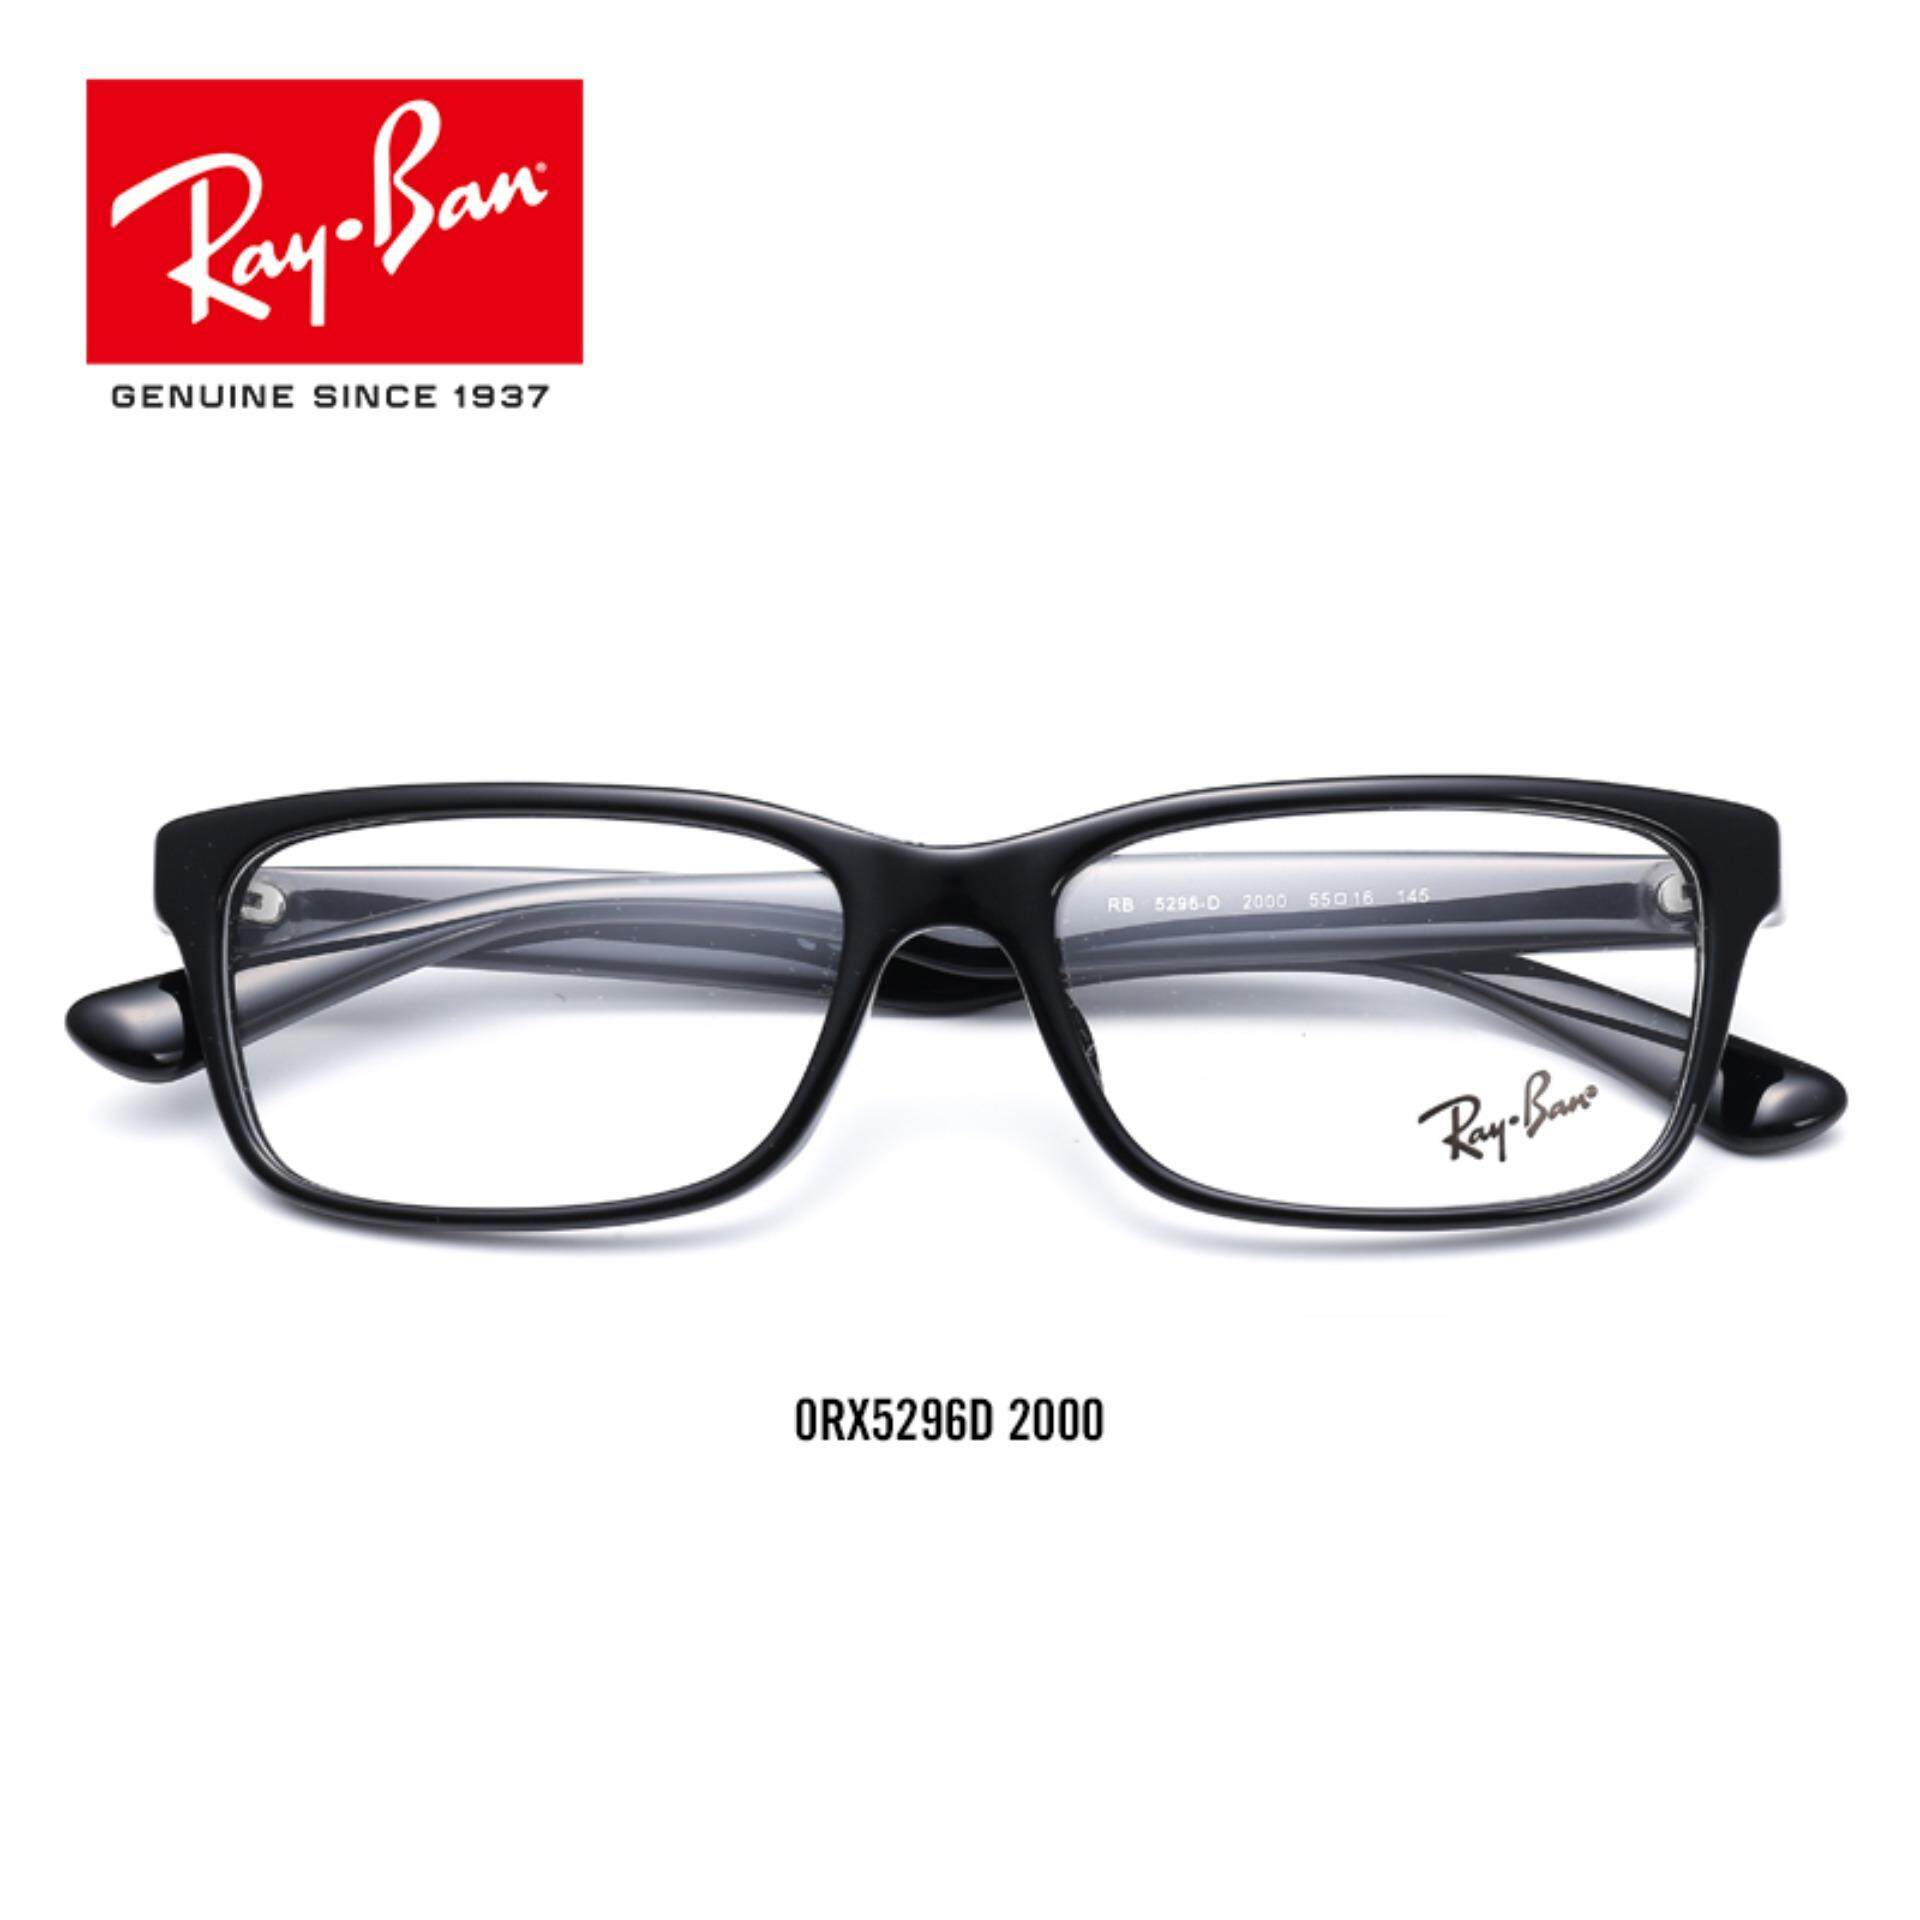 Ray Ban Products For The Best Price In Malaysia